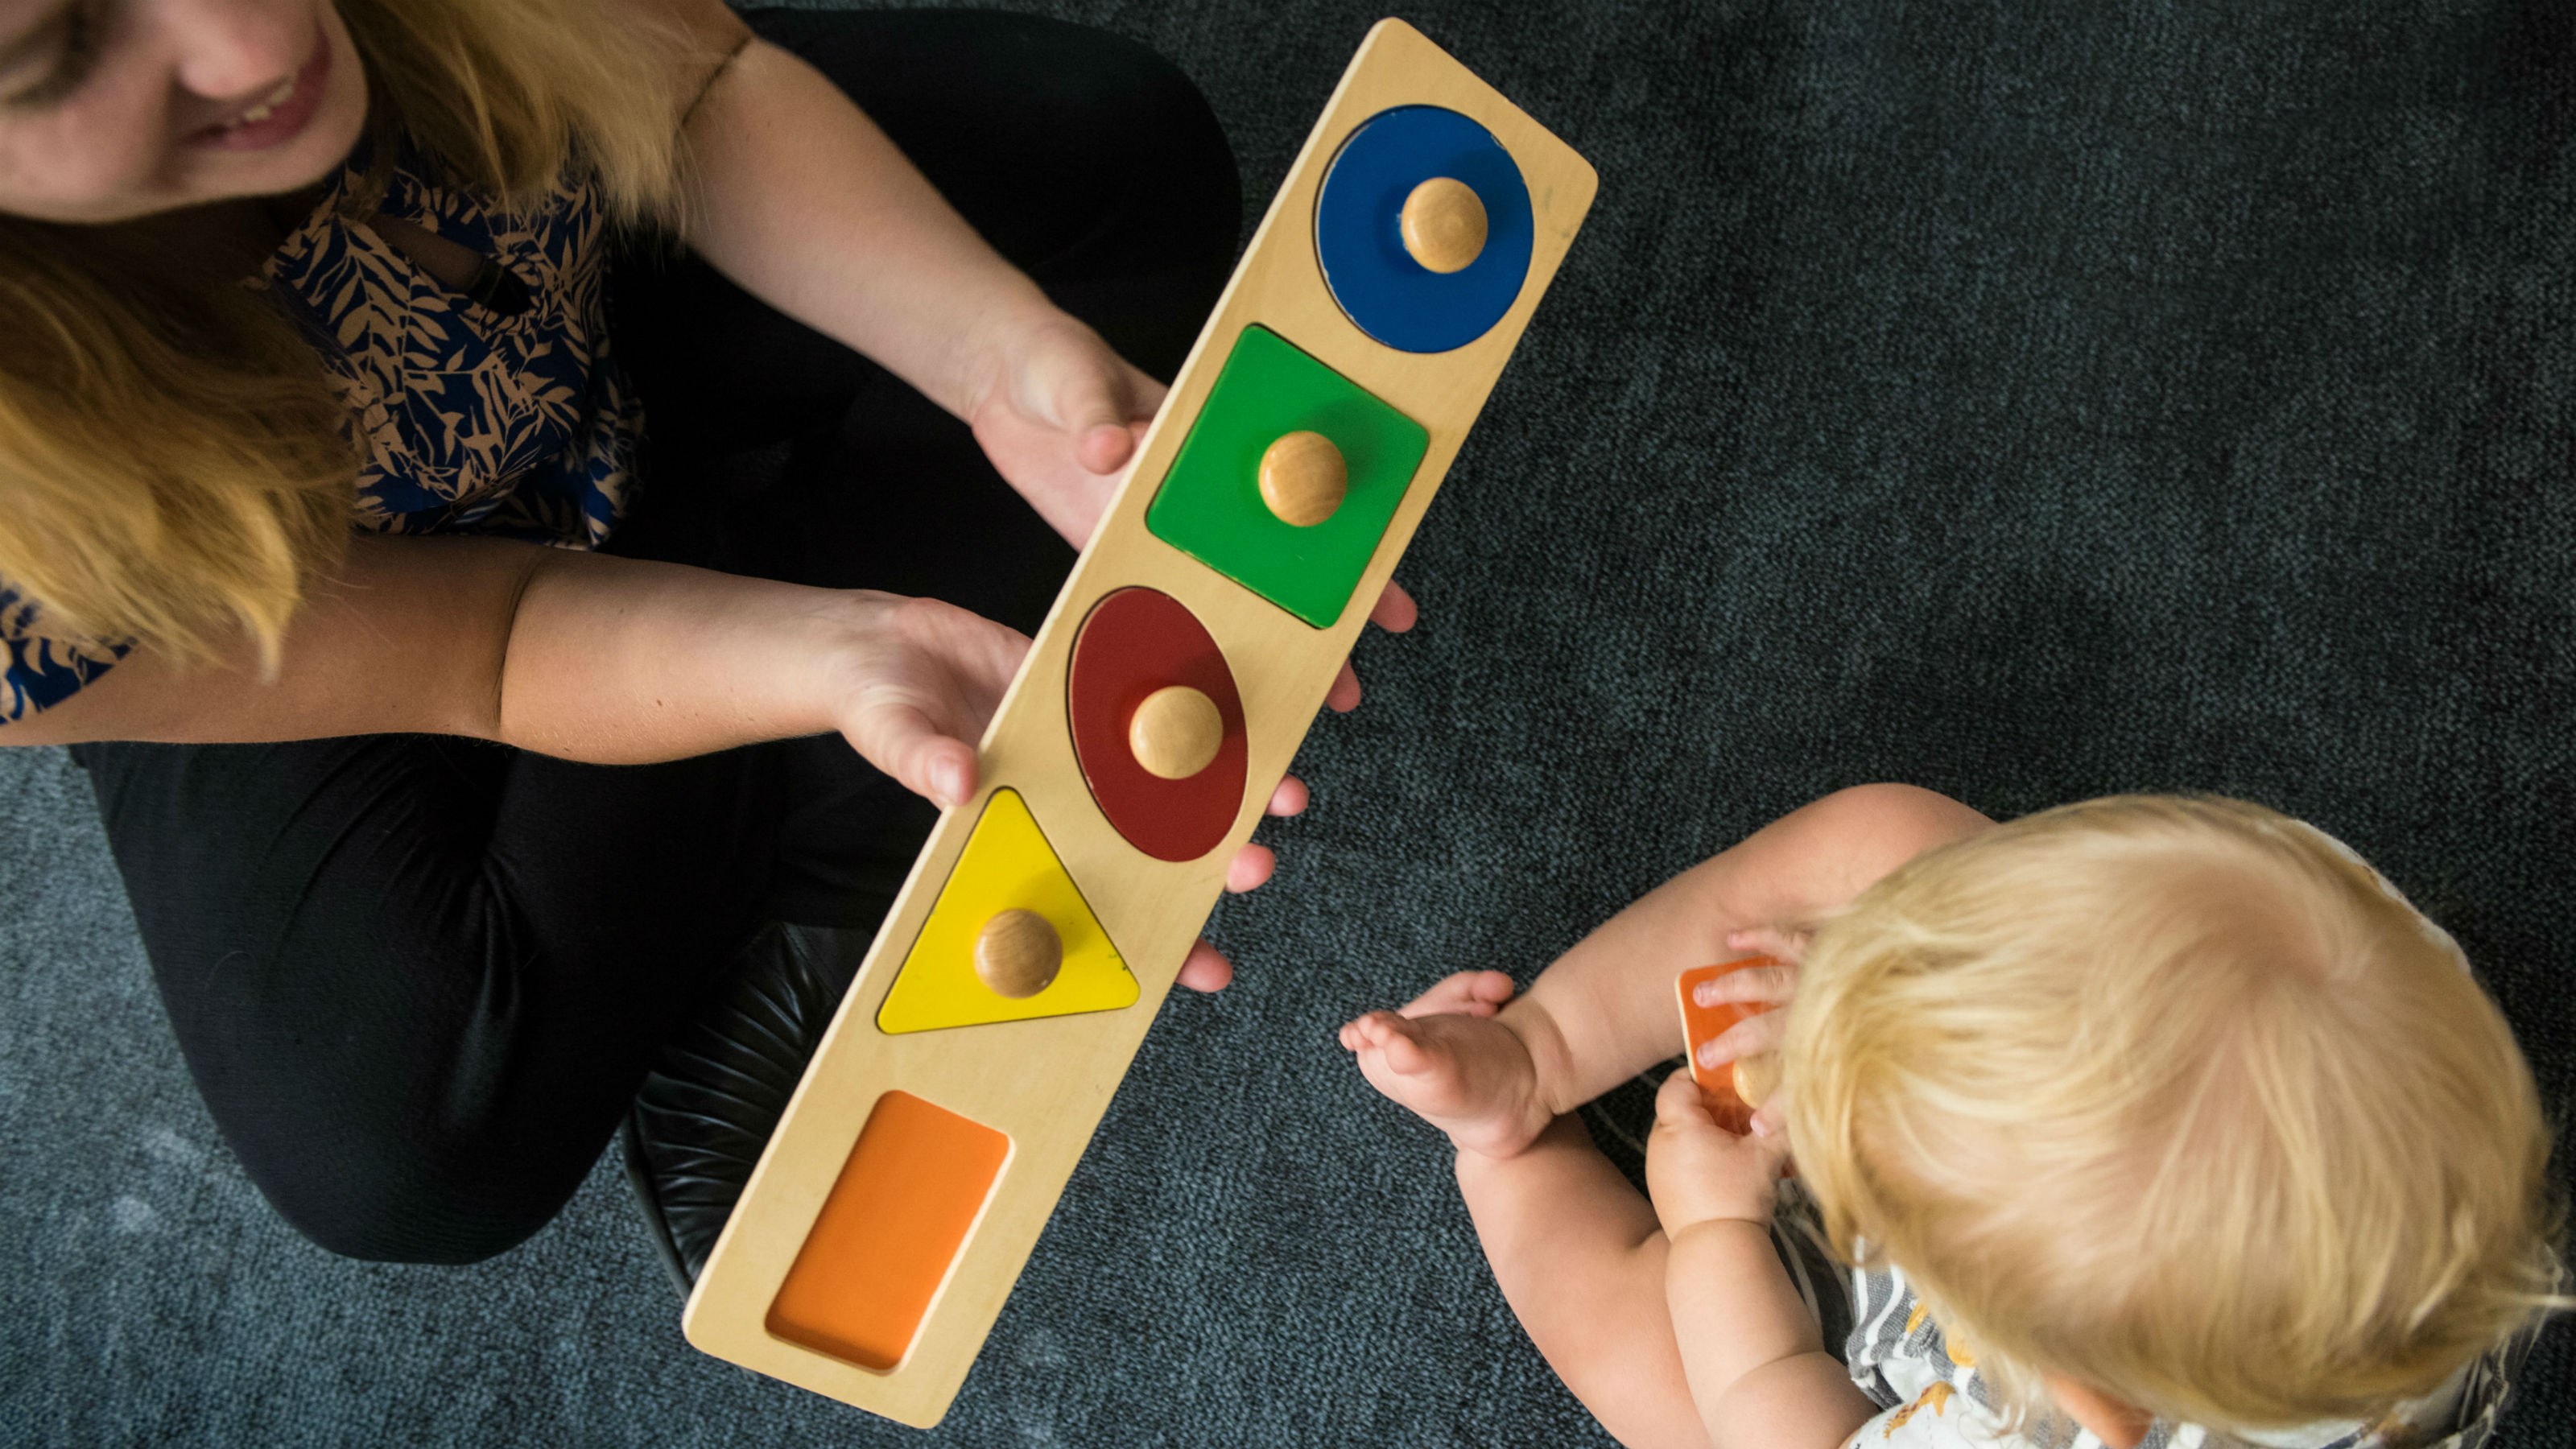 A view from above, a woman holds a wooden puzzle of four shapes, a young child holds an orange rectangular piece in his hand.